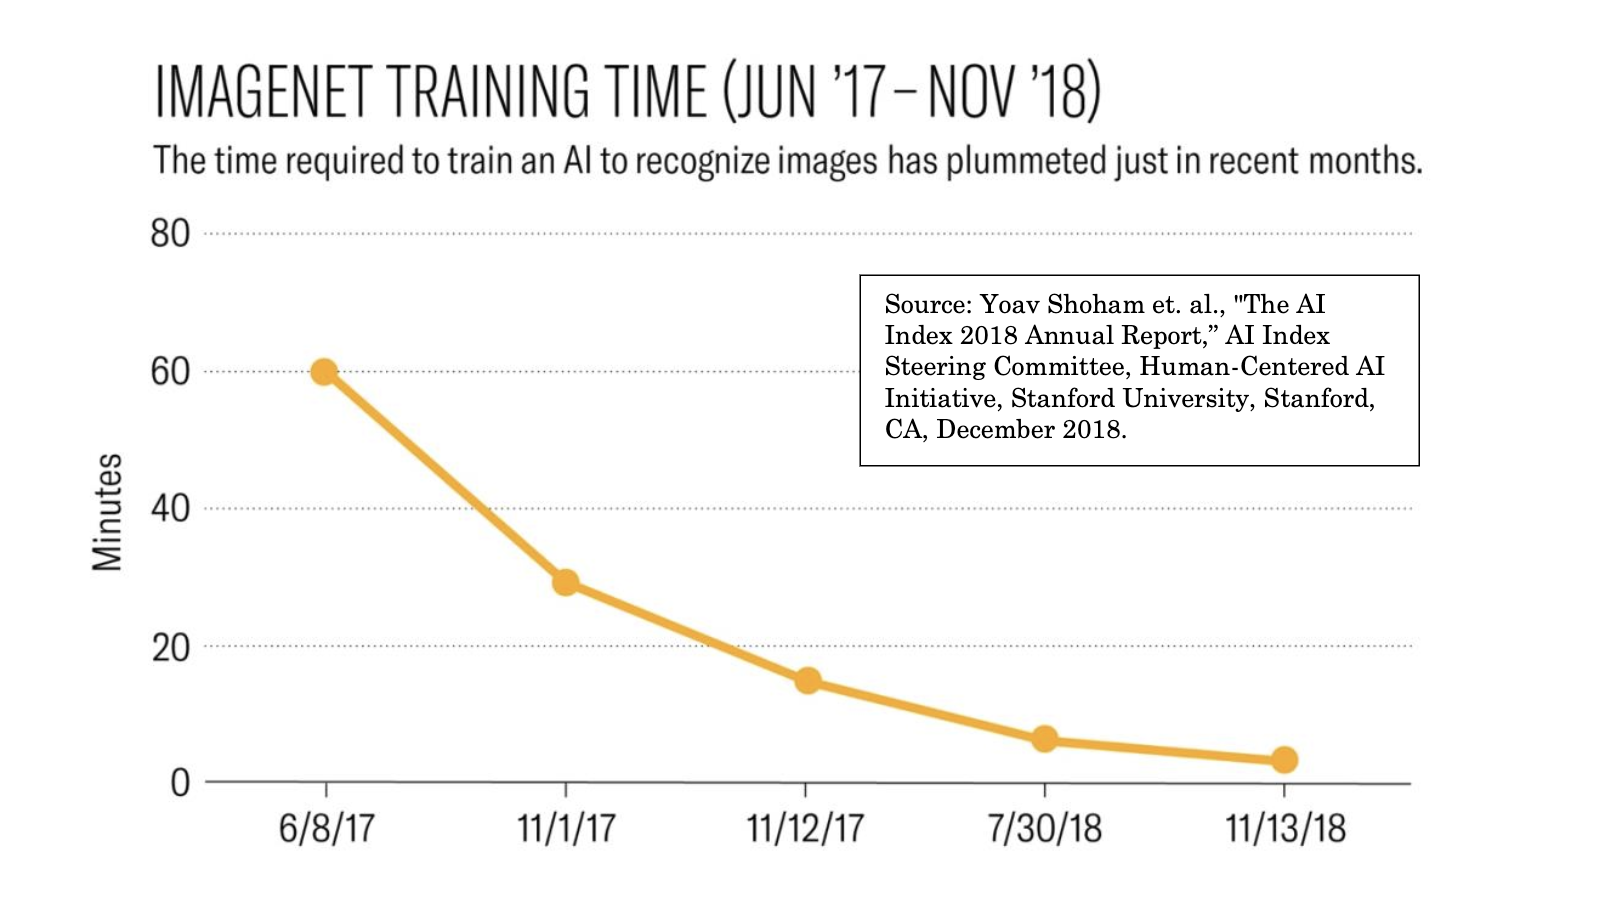 Graph of Imagenet training time: The time required to train an AI to recognize images has plummeted in just recent months.